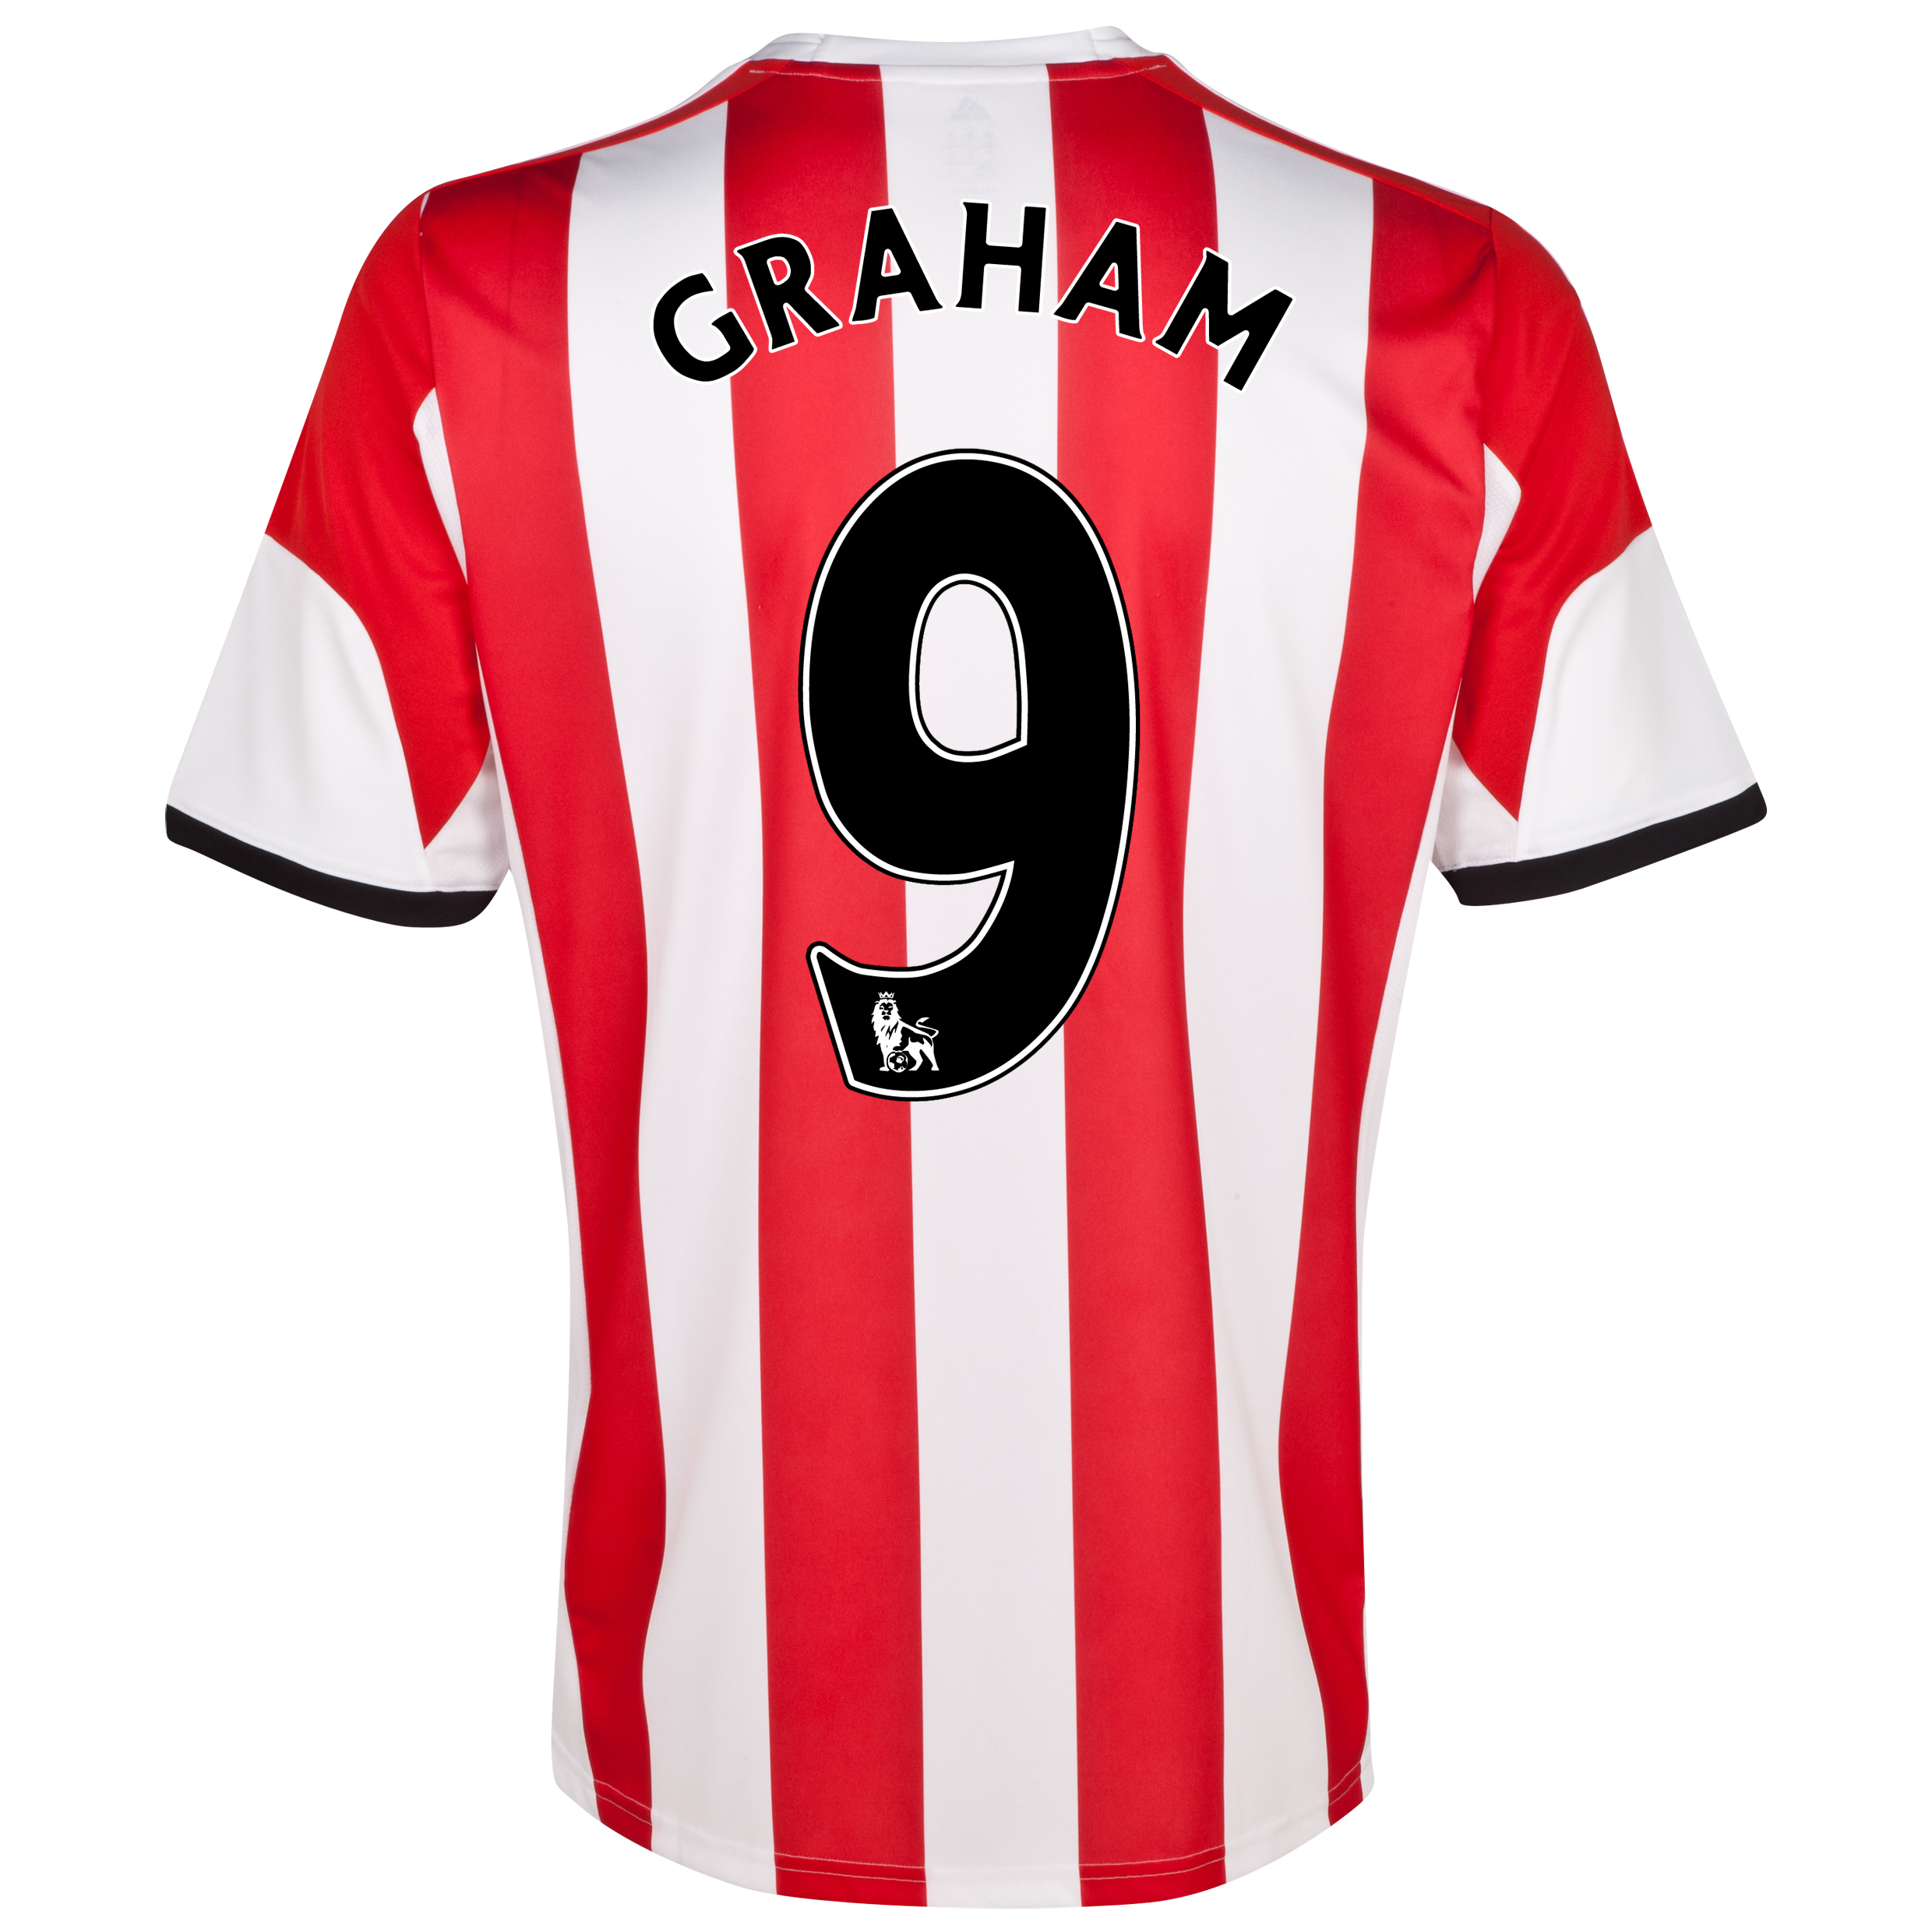 Sunderland Home Shirt 2013/14  with Graham 9 printing